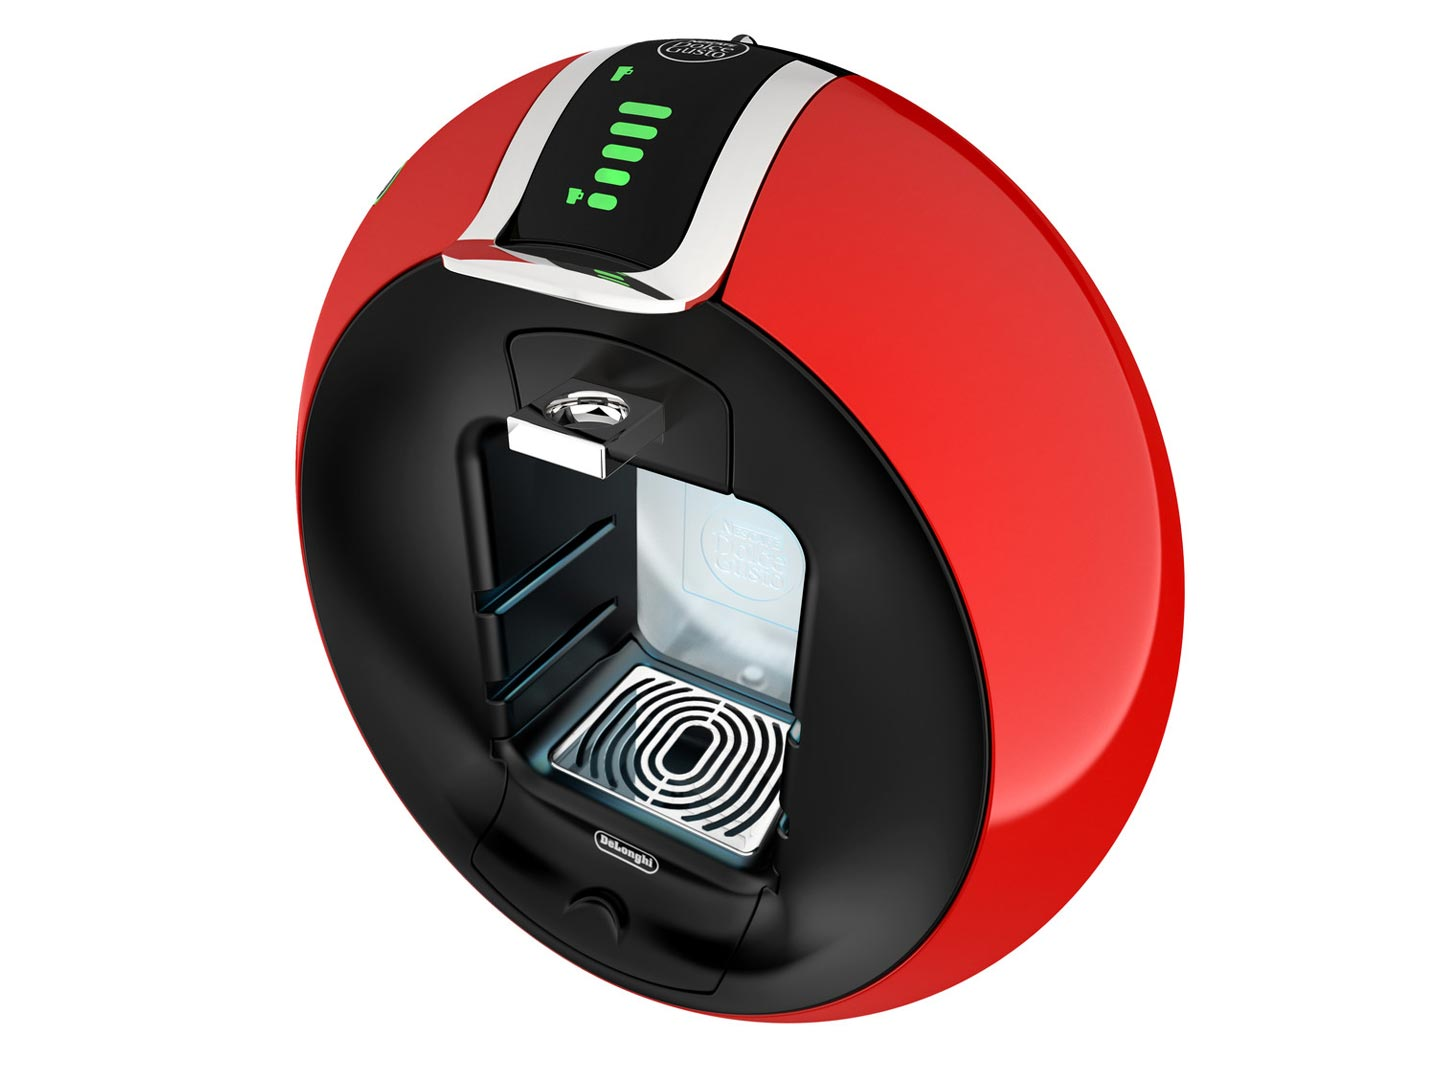 dolce gusto nescafe circolo coffee machine. Black Bedroom Furniture Sets. Home Design Ideas